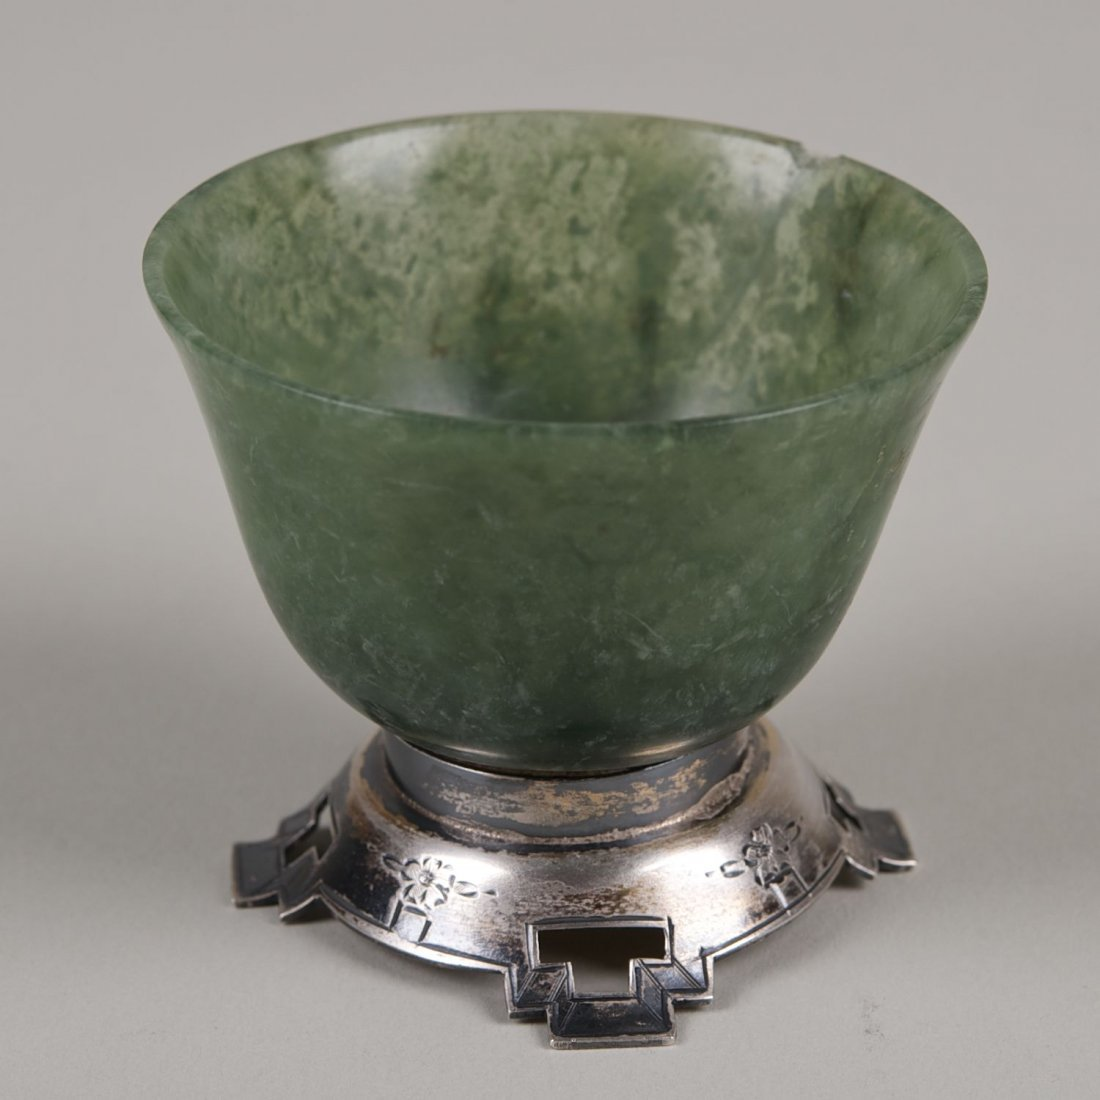 Chinese jade cup with sterling mount by Ed. Farmer